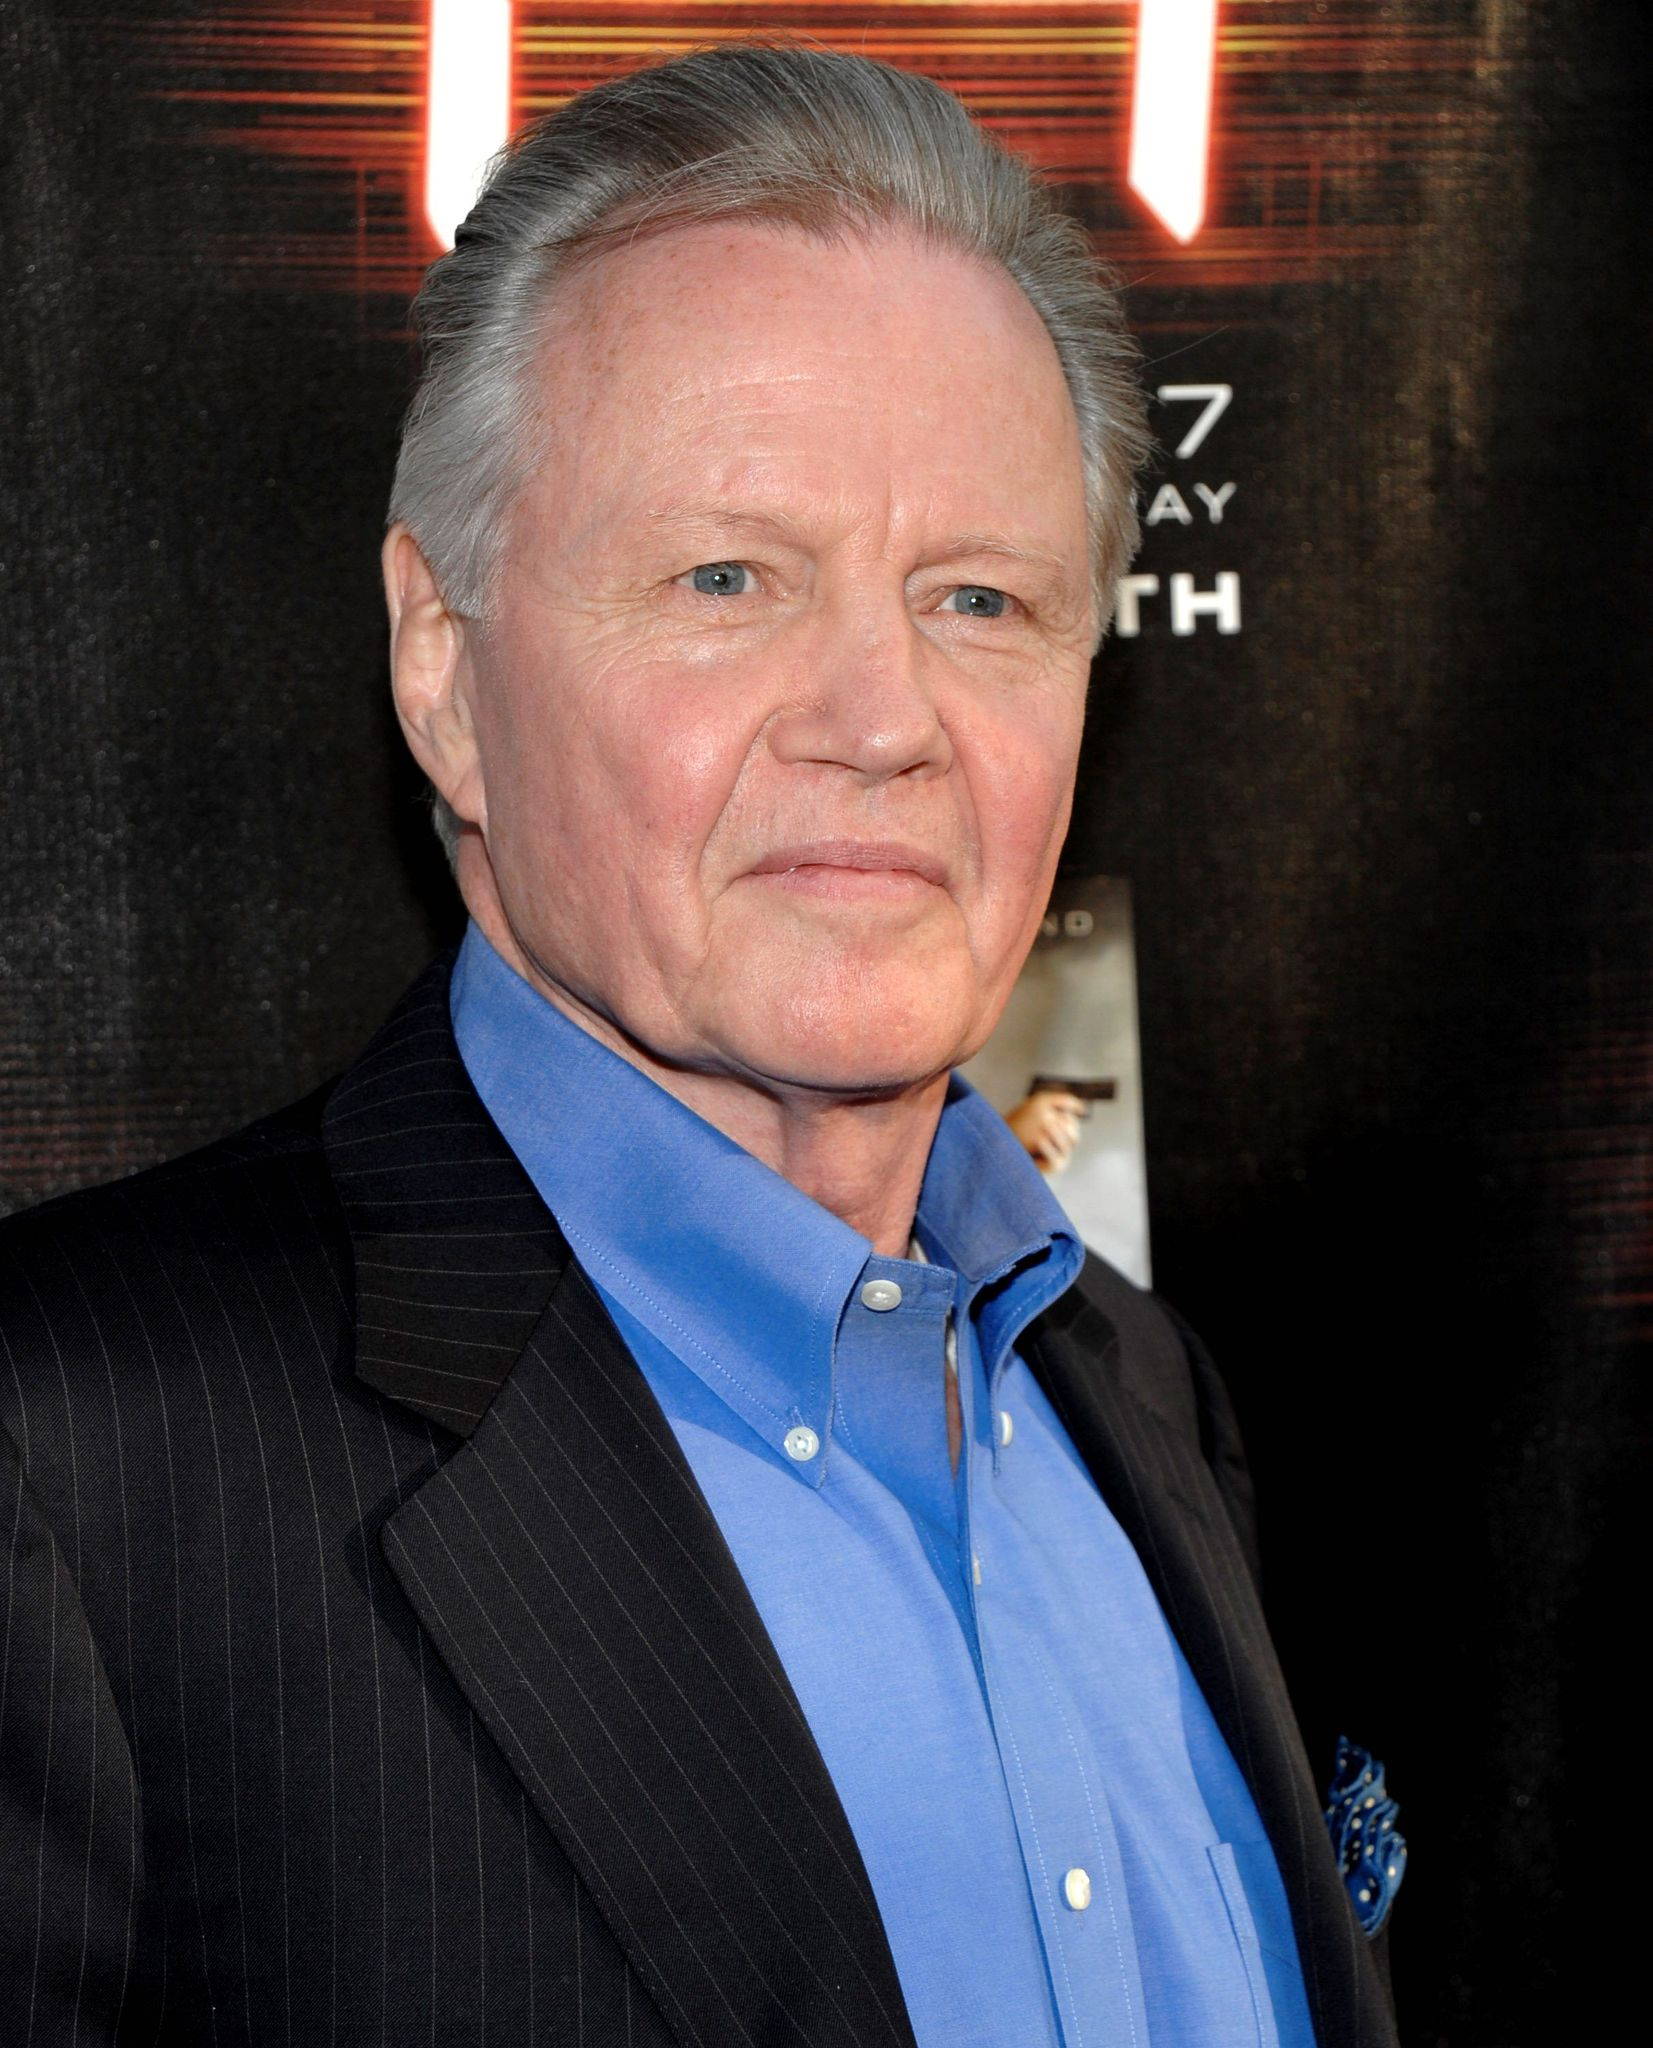 An open letter to President Obama from Jon Voight